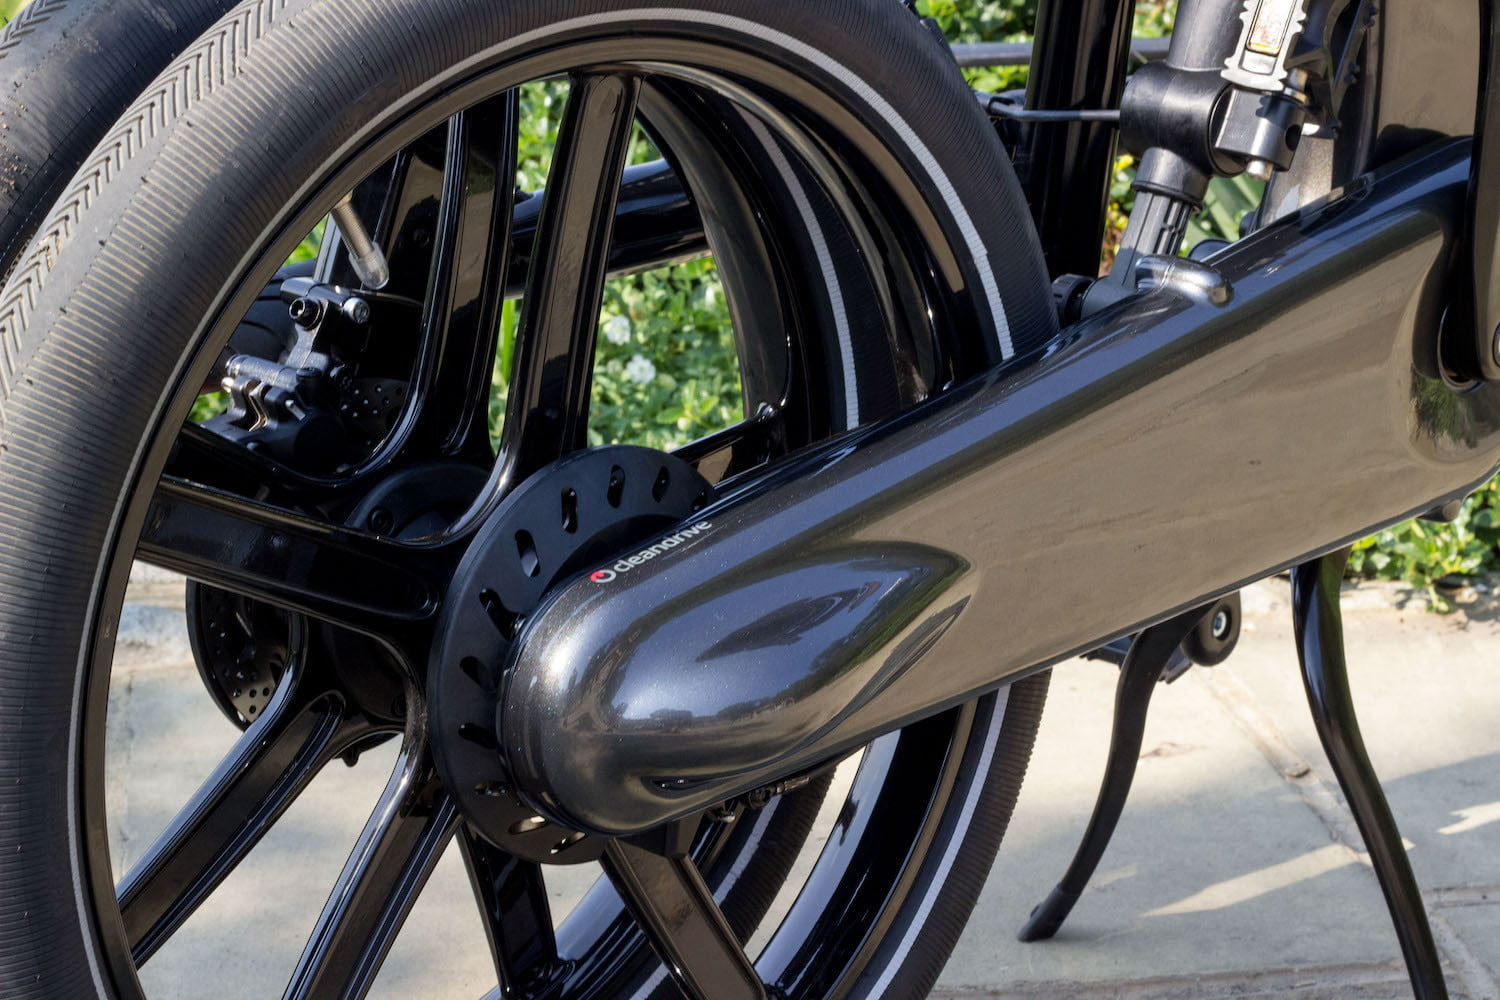 gocycles new gxi electric bike can fold away in a mere 10 seconds gocycle 3